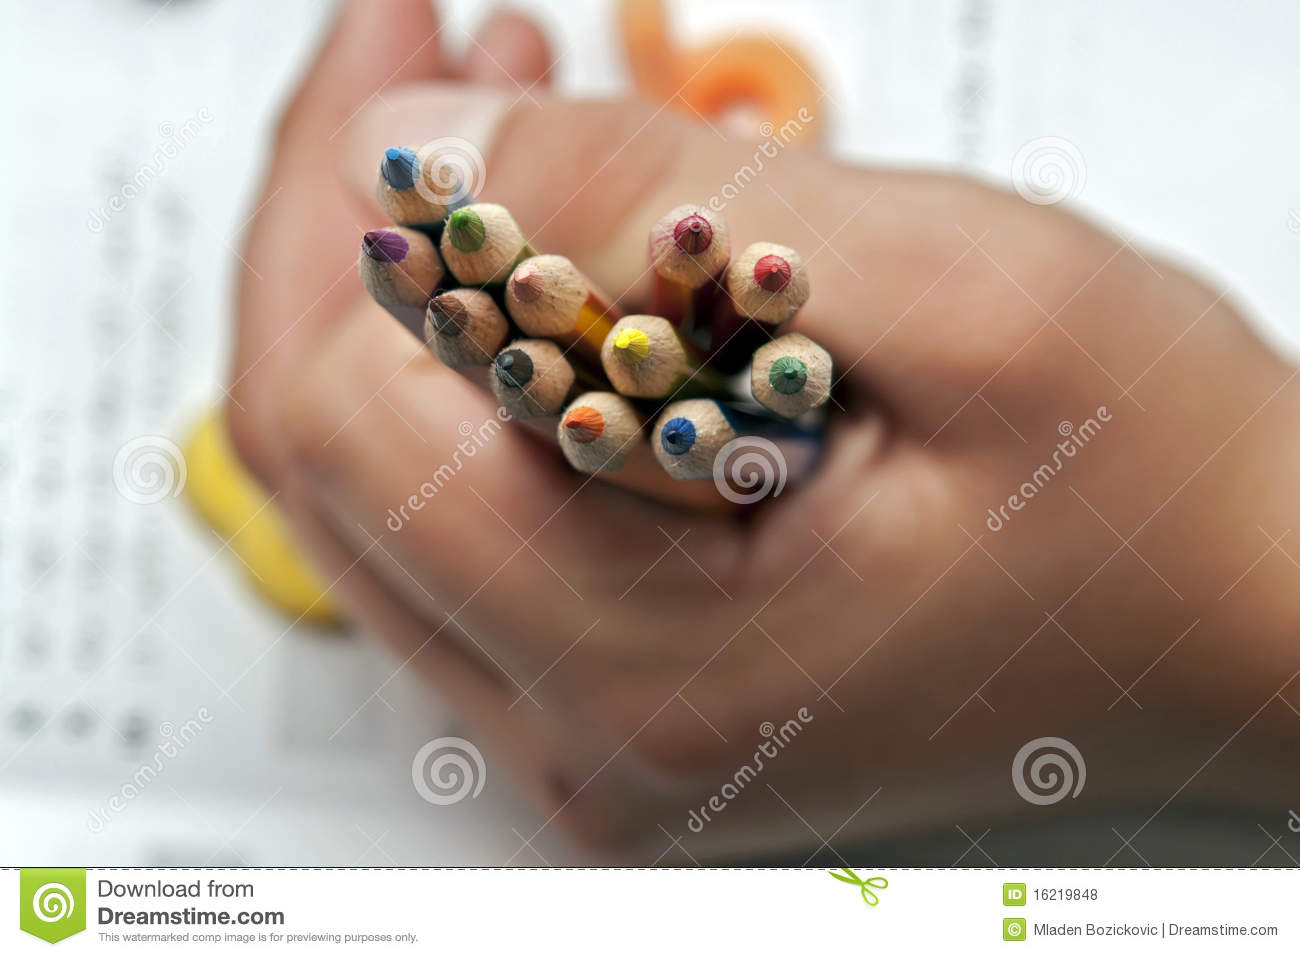 A handfull of crayons